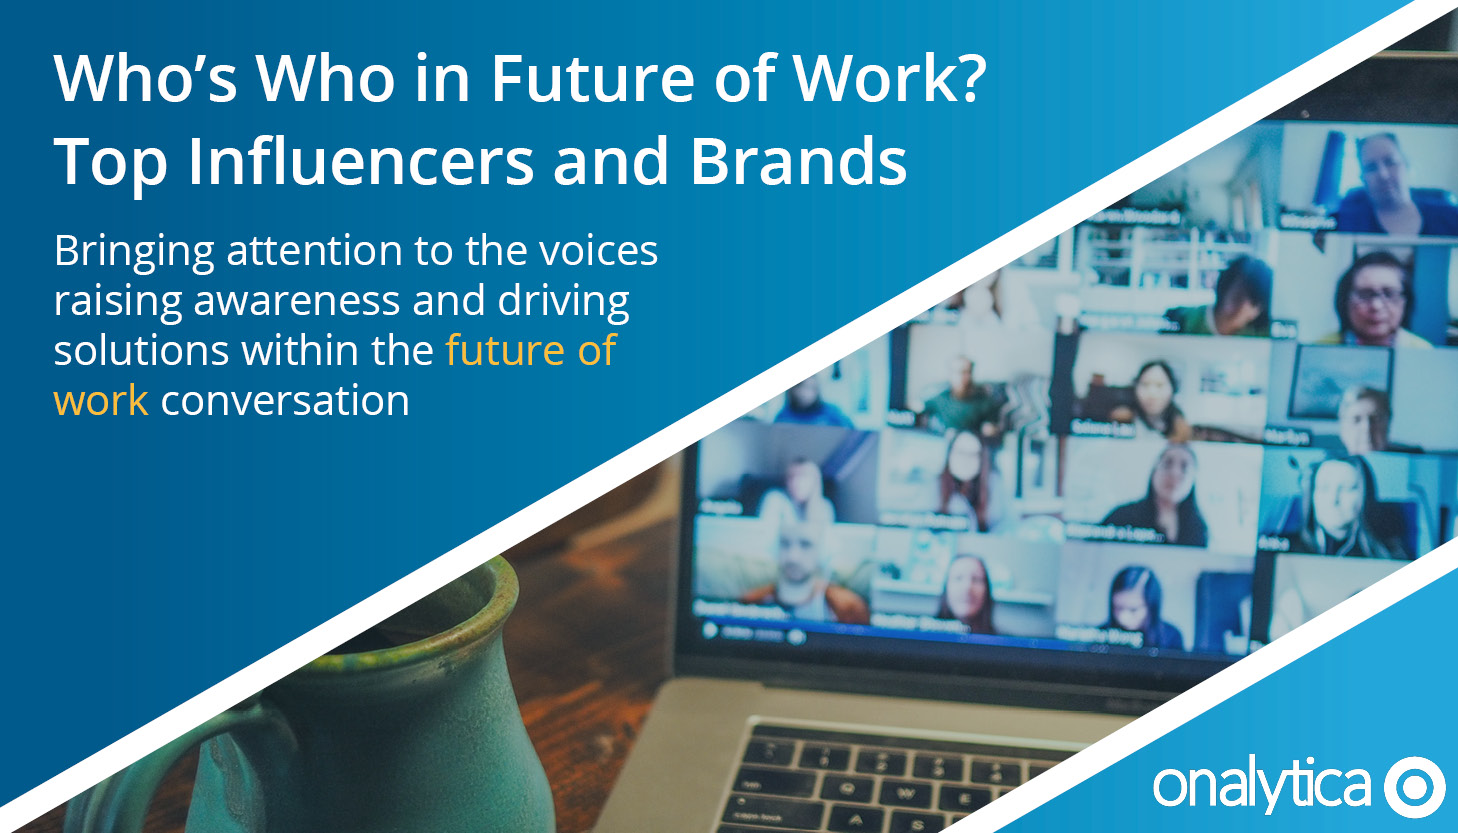 Who's Who in Future of Work?